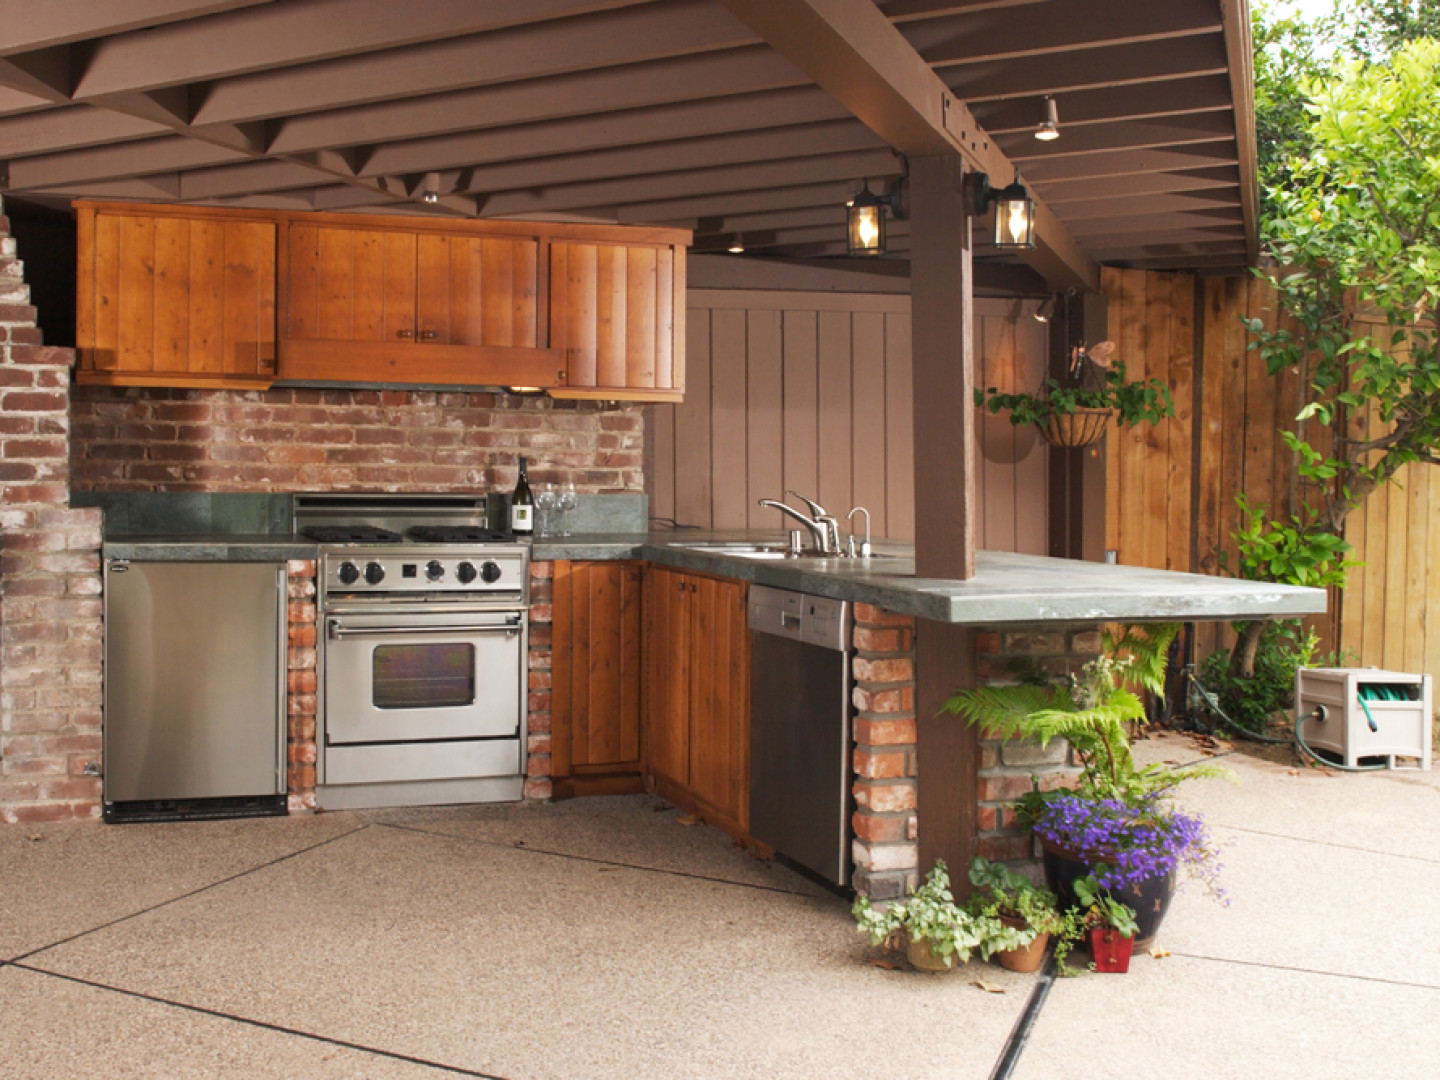 Outdoor kitchens create extra living space